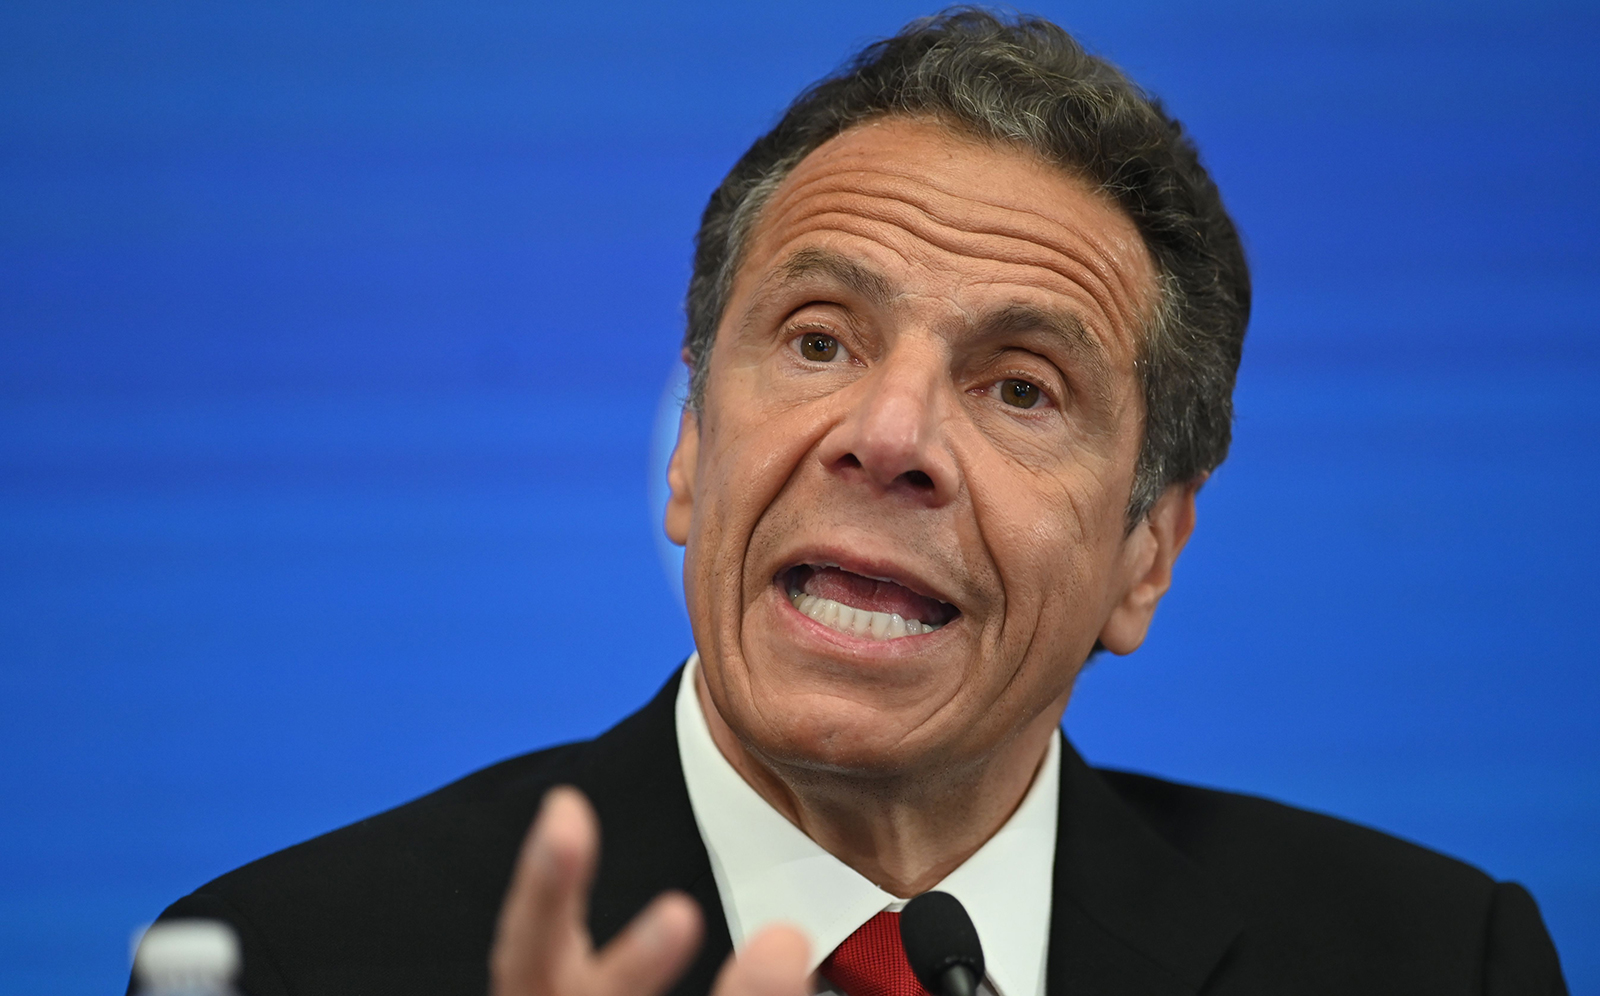 Governor of New York Andrew Cuomo speaks during a press conference at the New York Stock Exchange on May 26, at Wall Street in New York City.